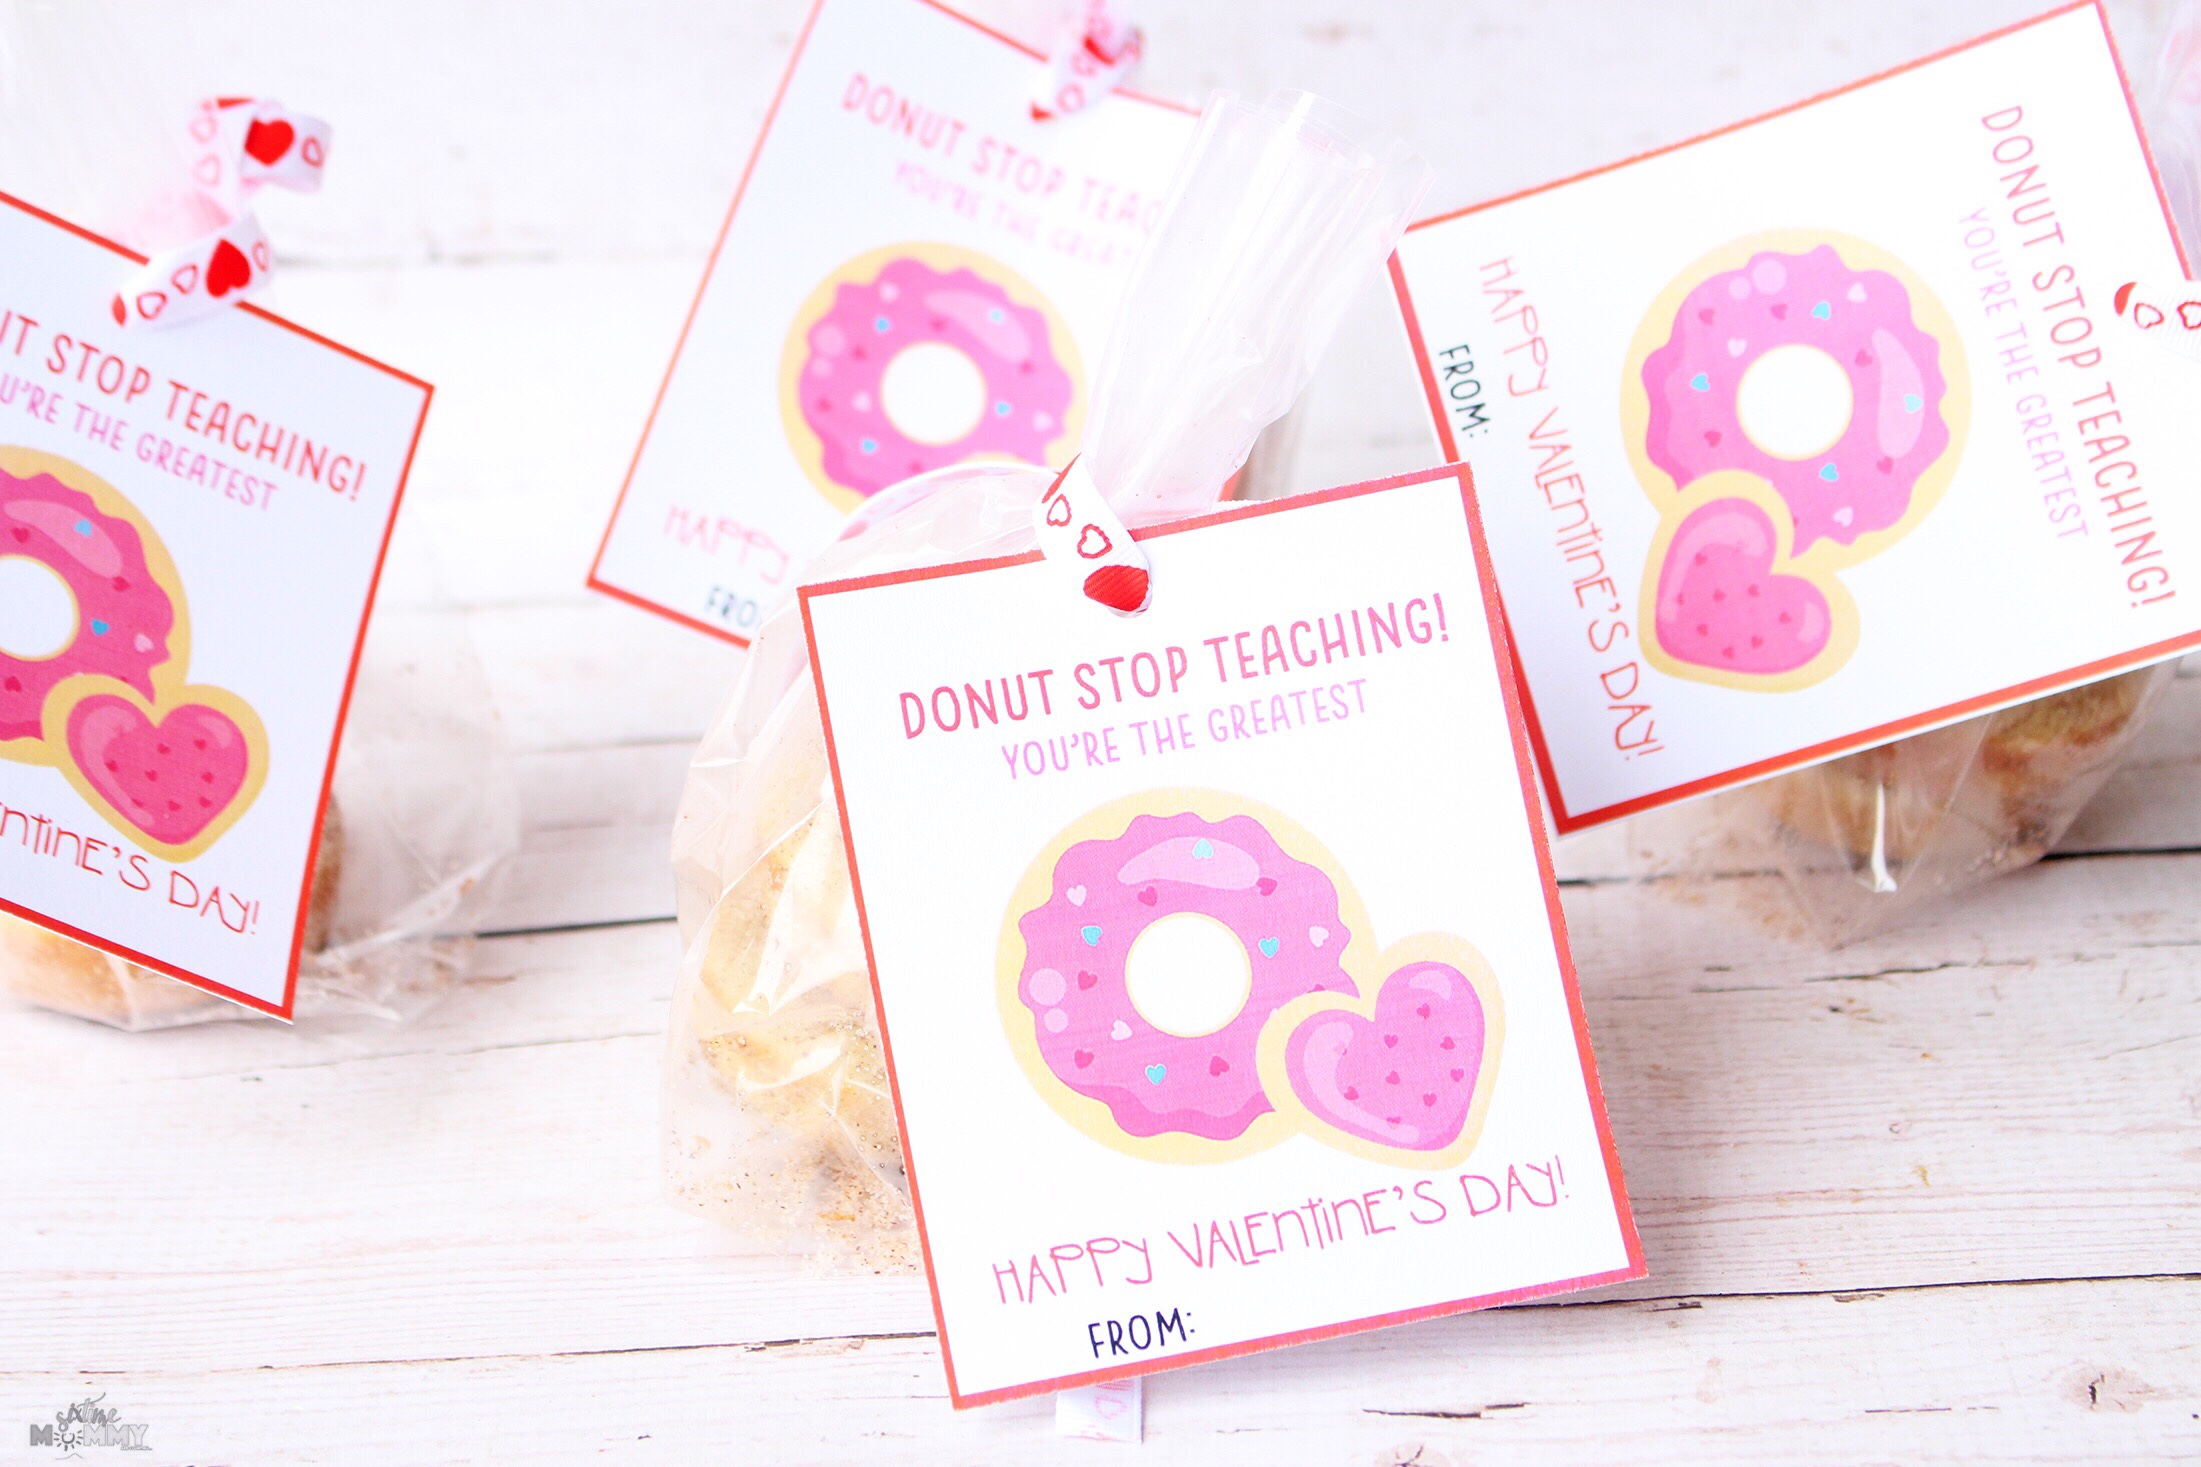 Valentine's Cards + Treats for Teachers With FREE Printable!